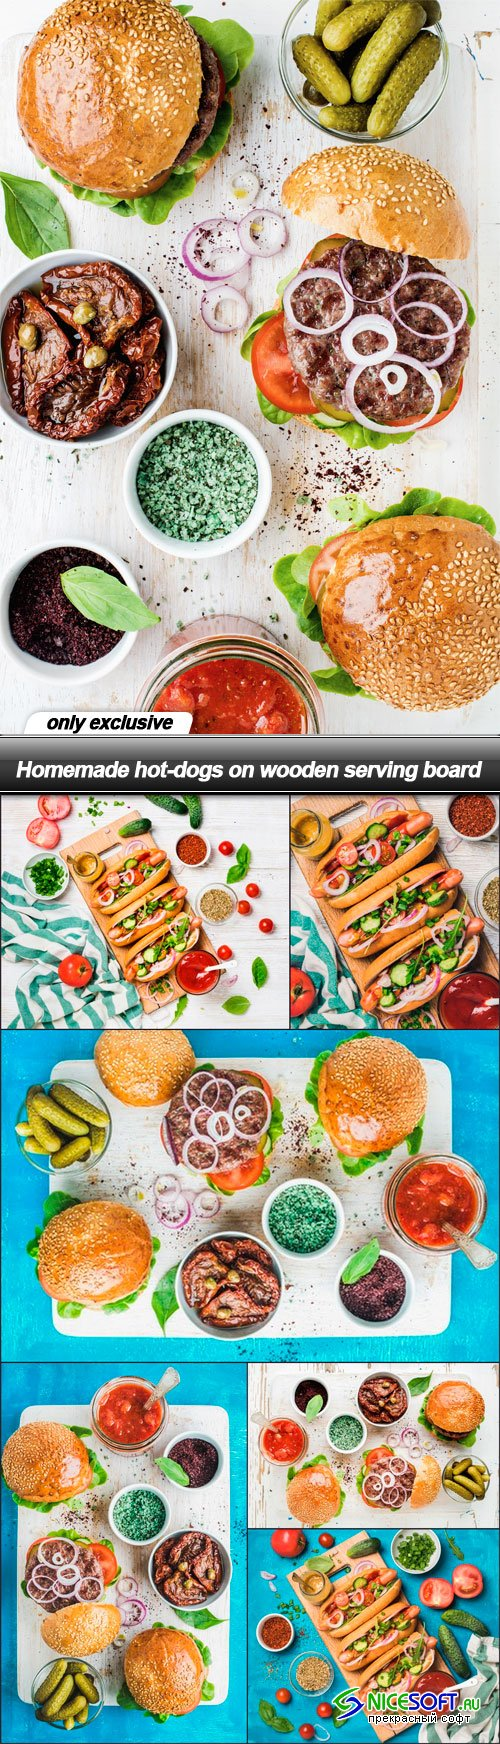 Homemade hot-dogs on wooden serving board